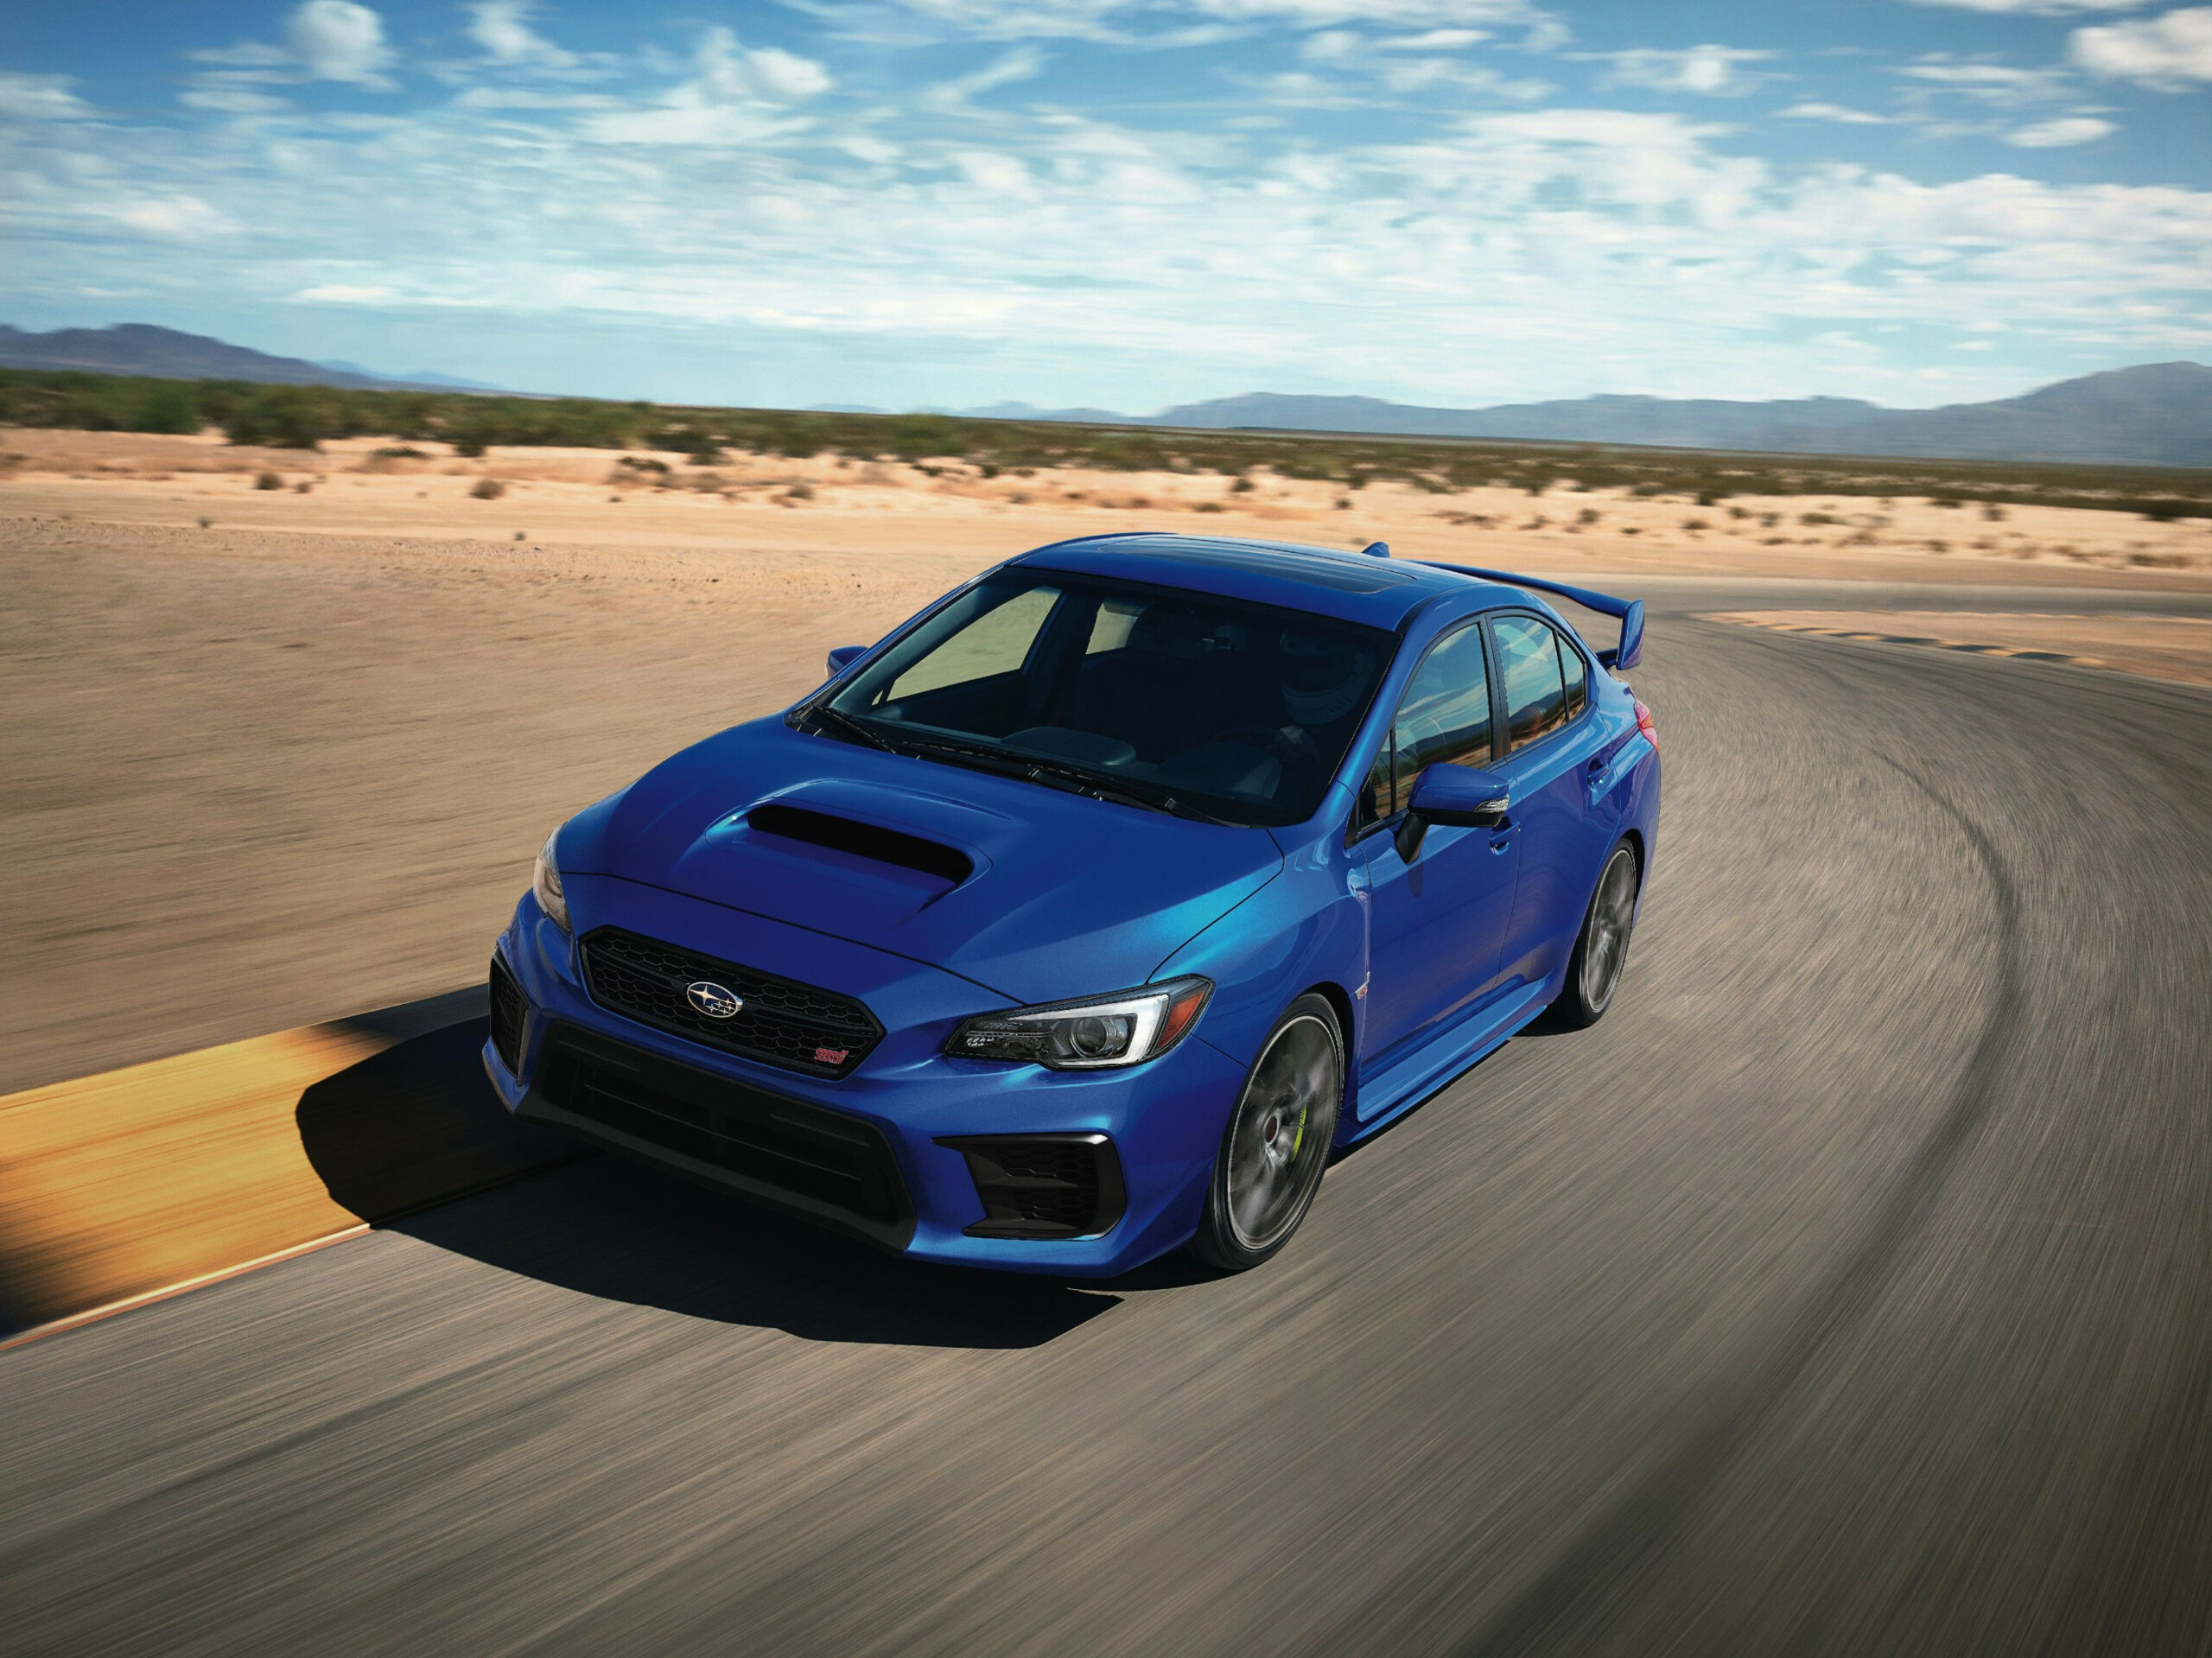 10 Subaru WRX STI Review, Pricing, and Specs